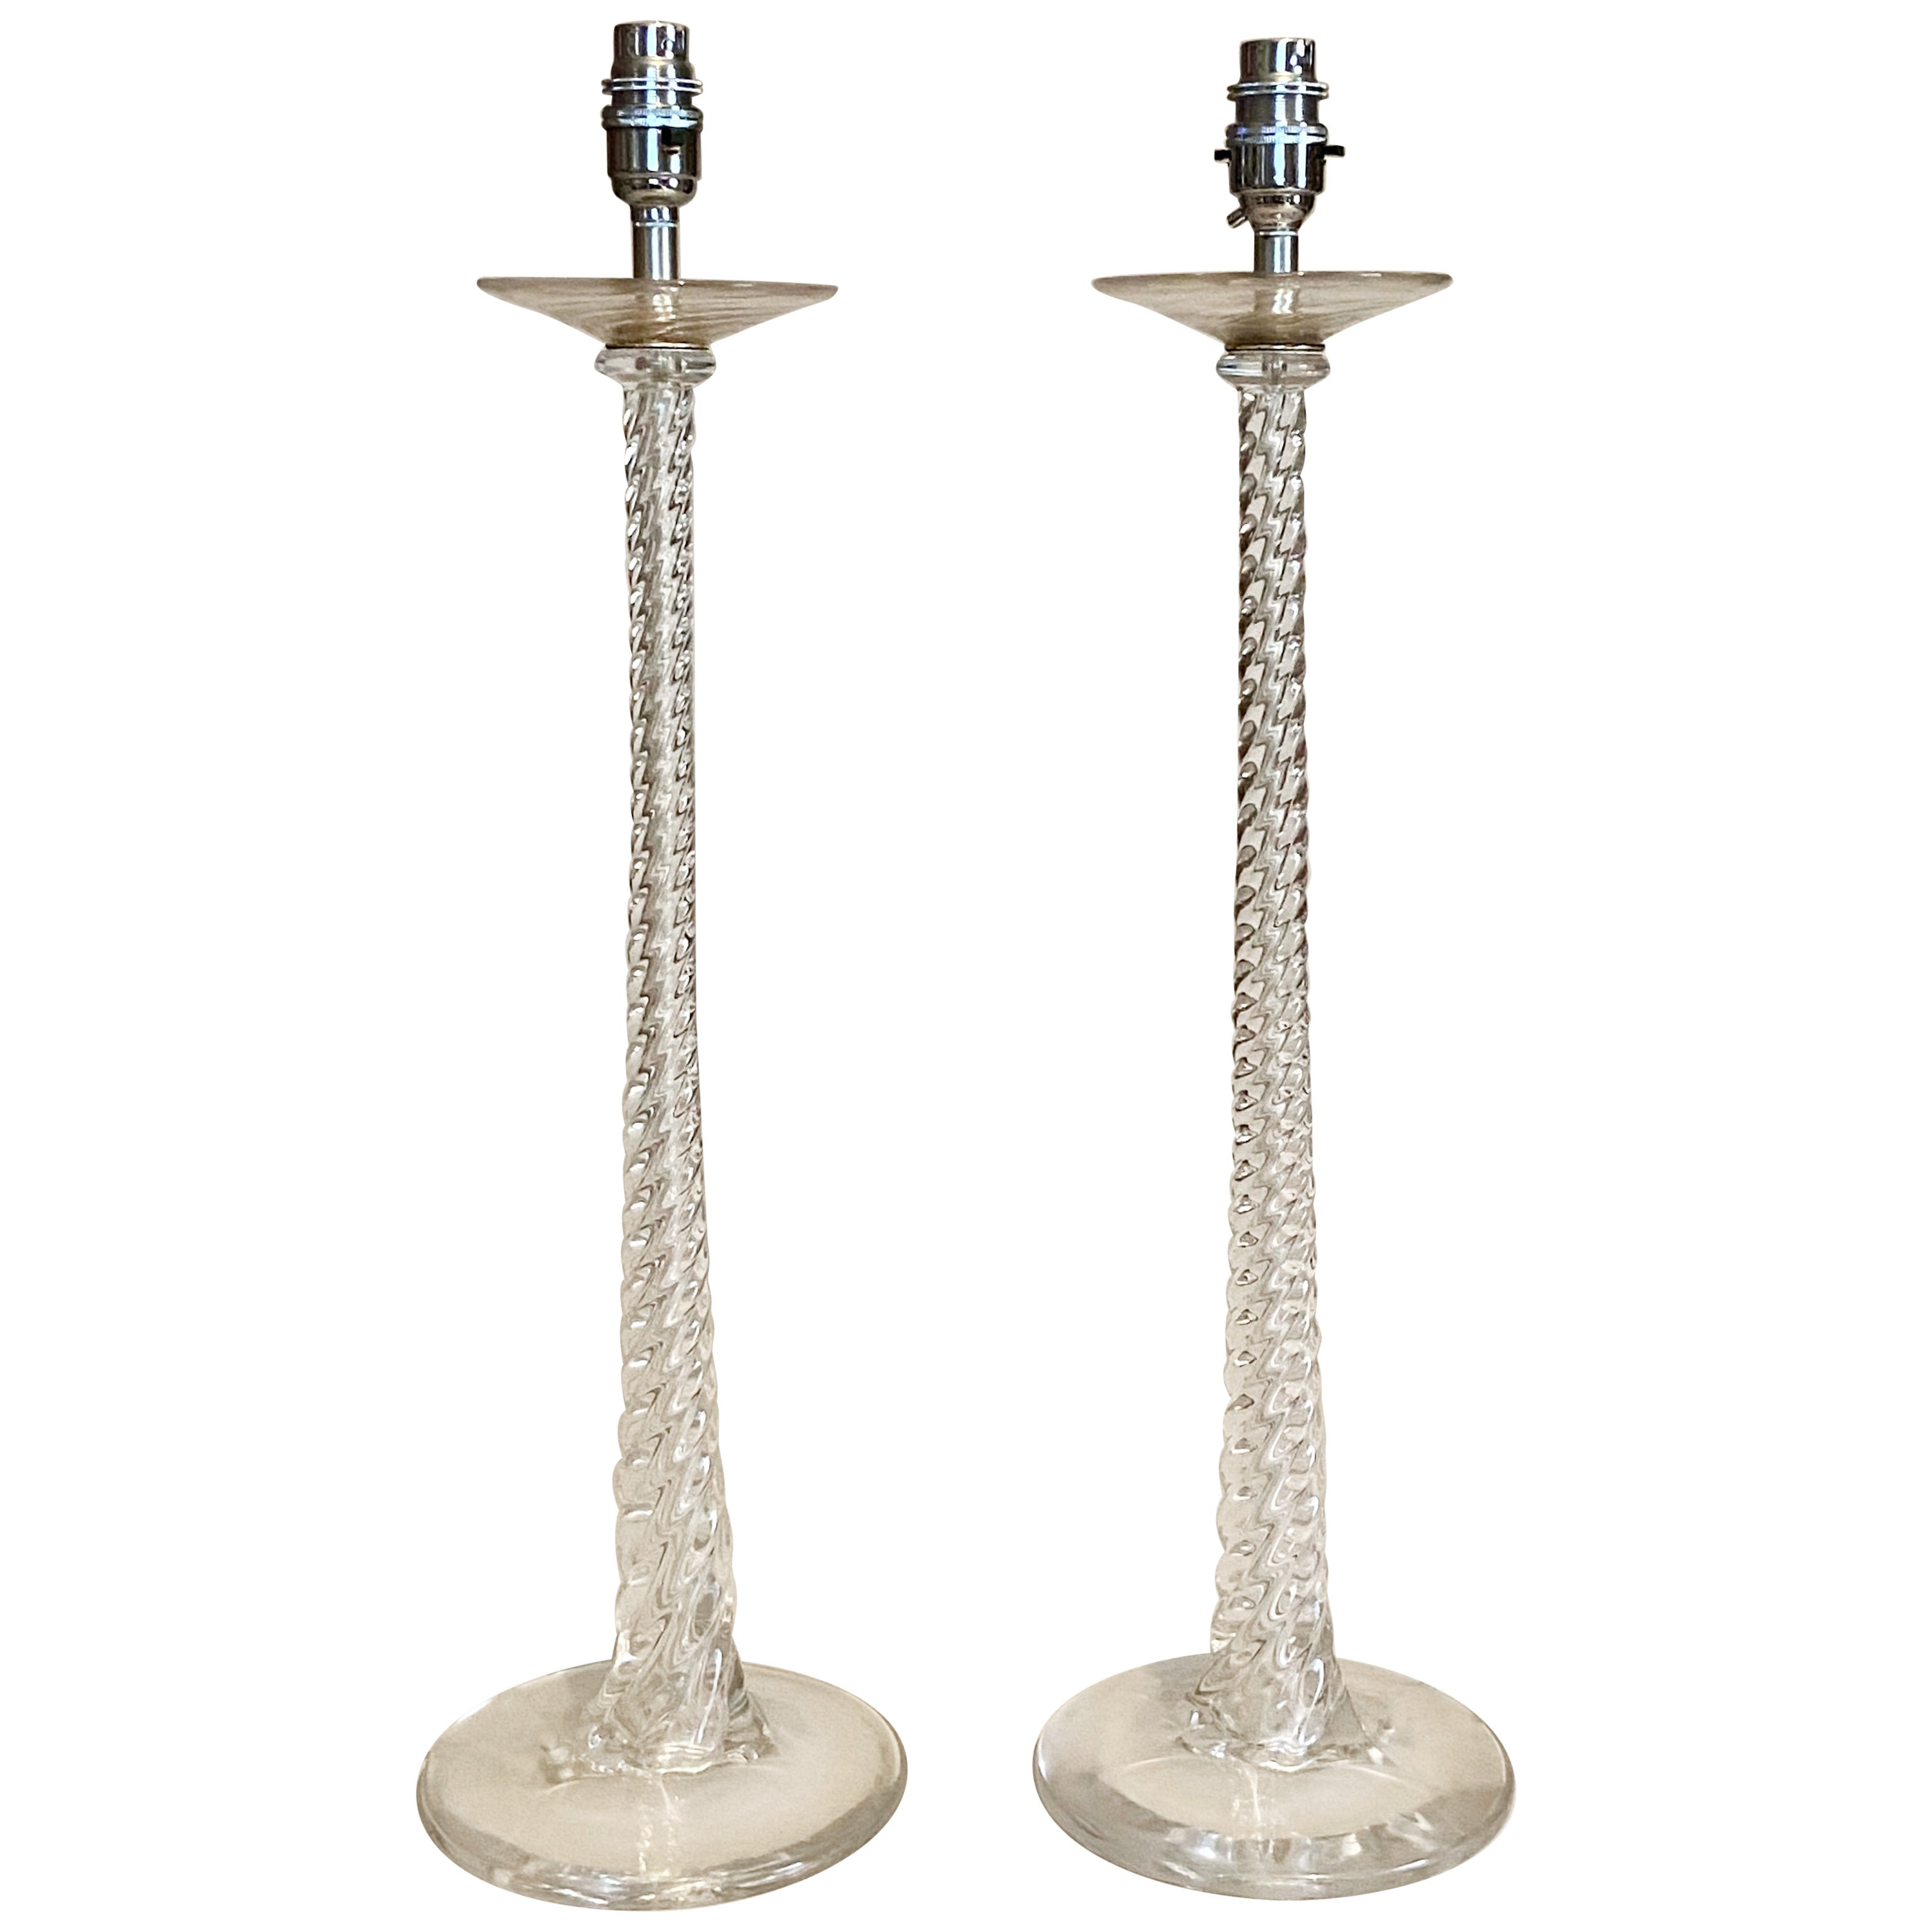 20th Century Glass Table Lamps